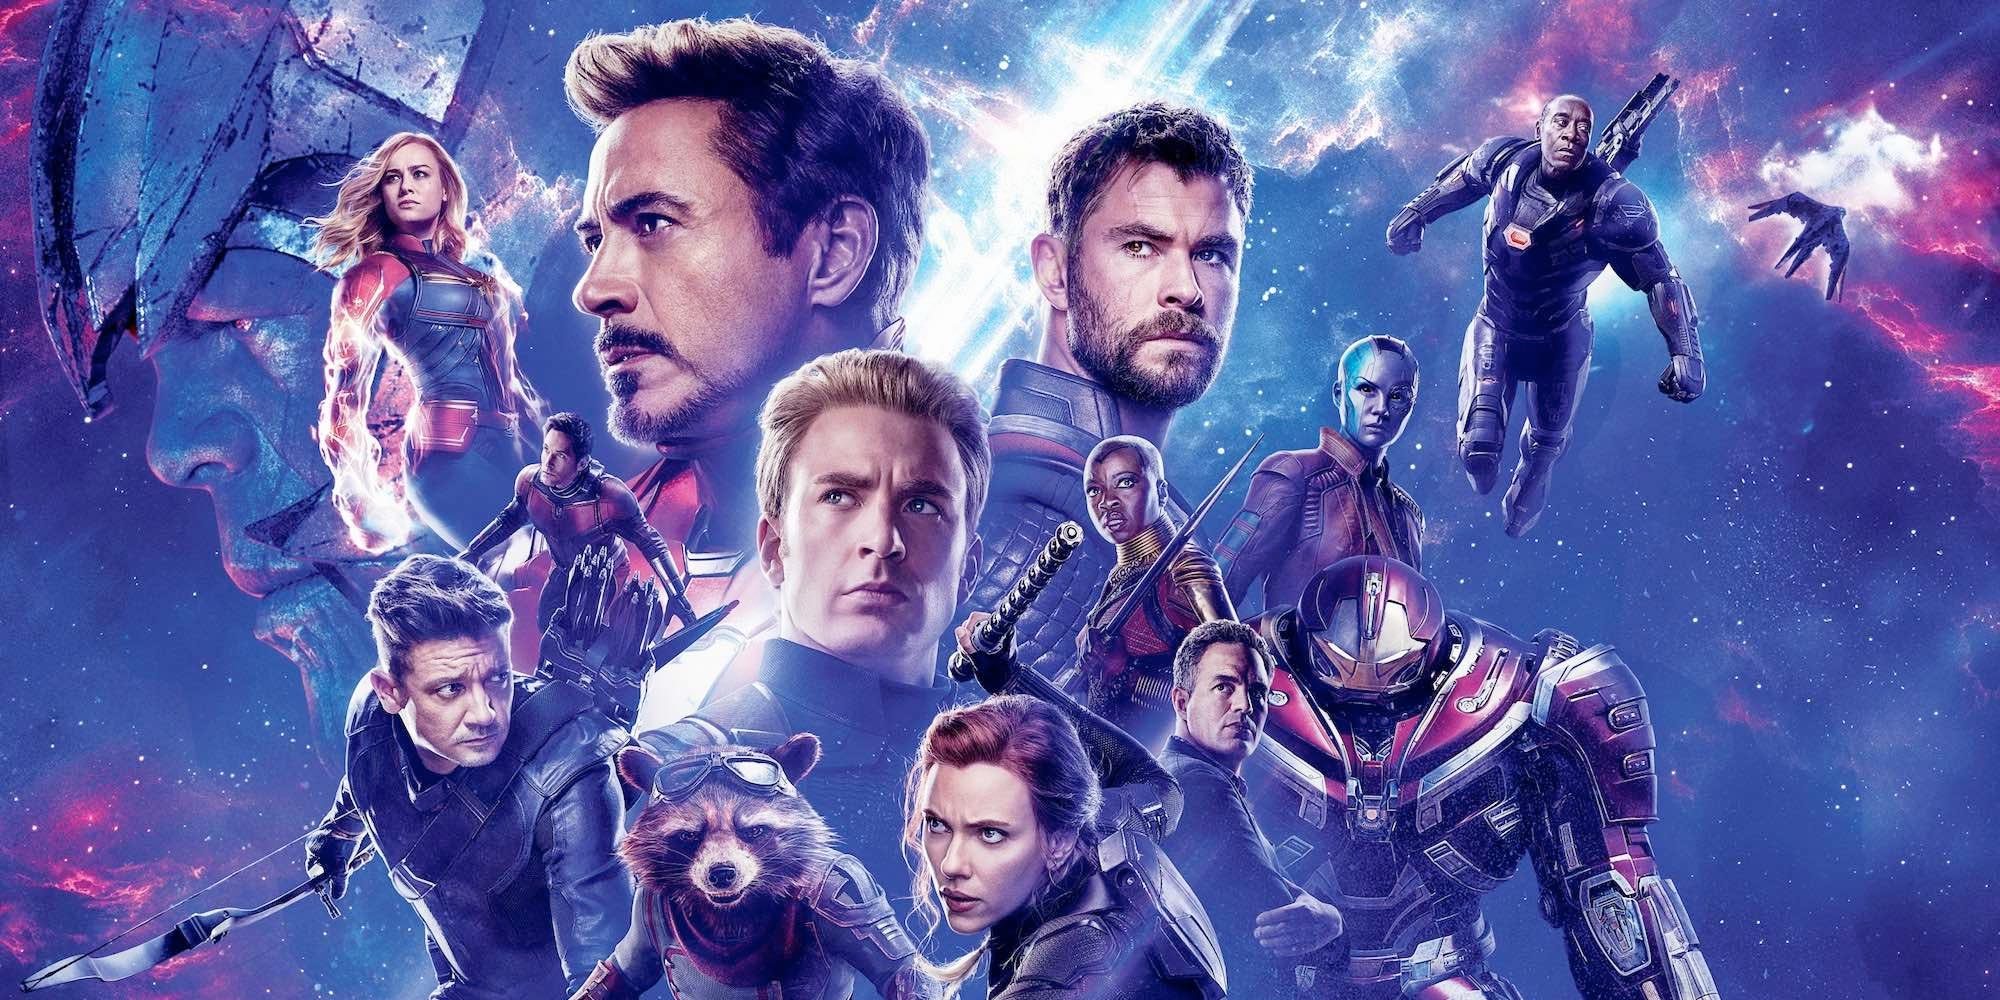 Avengers Endgame Spoiler Review: This Is The Fight of Our Lives /Film